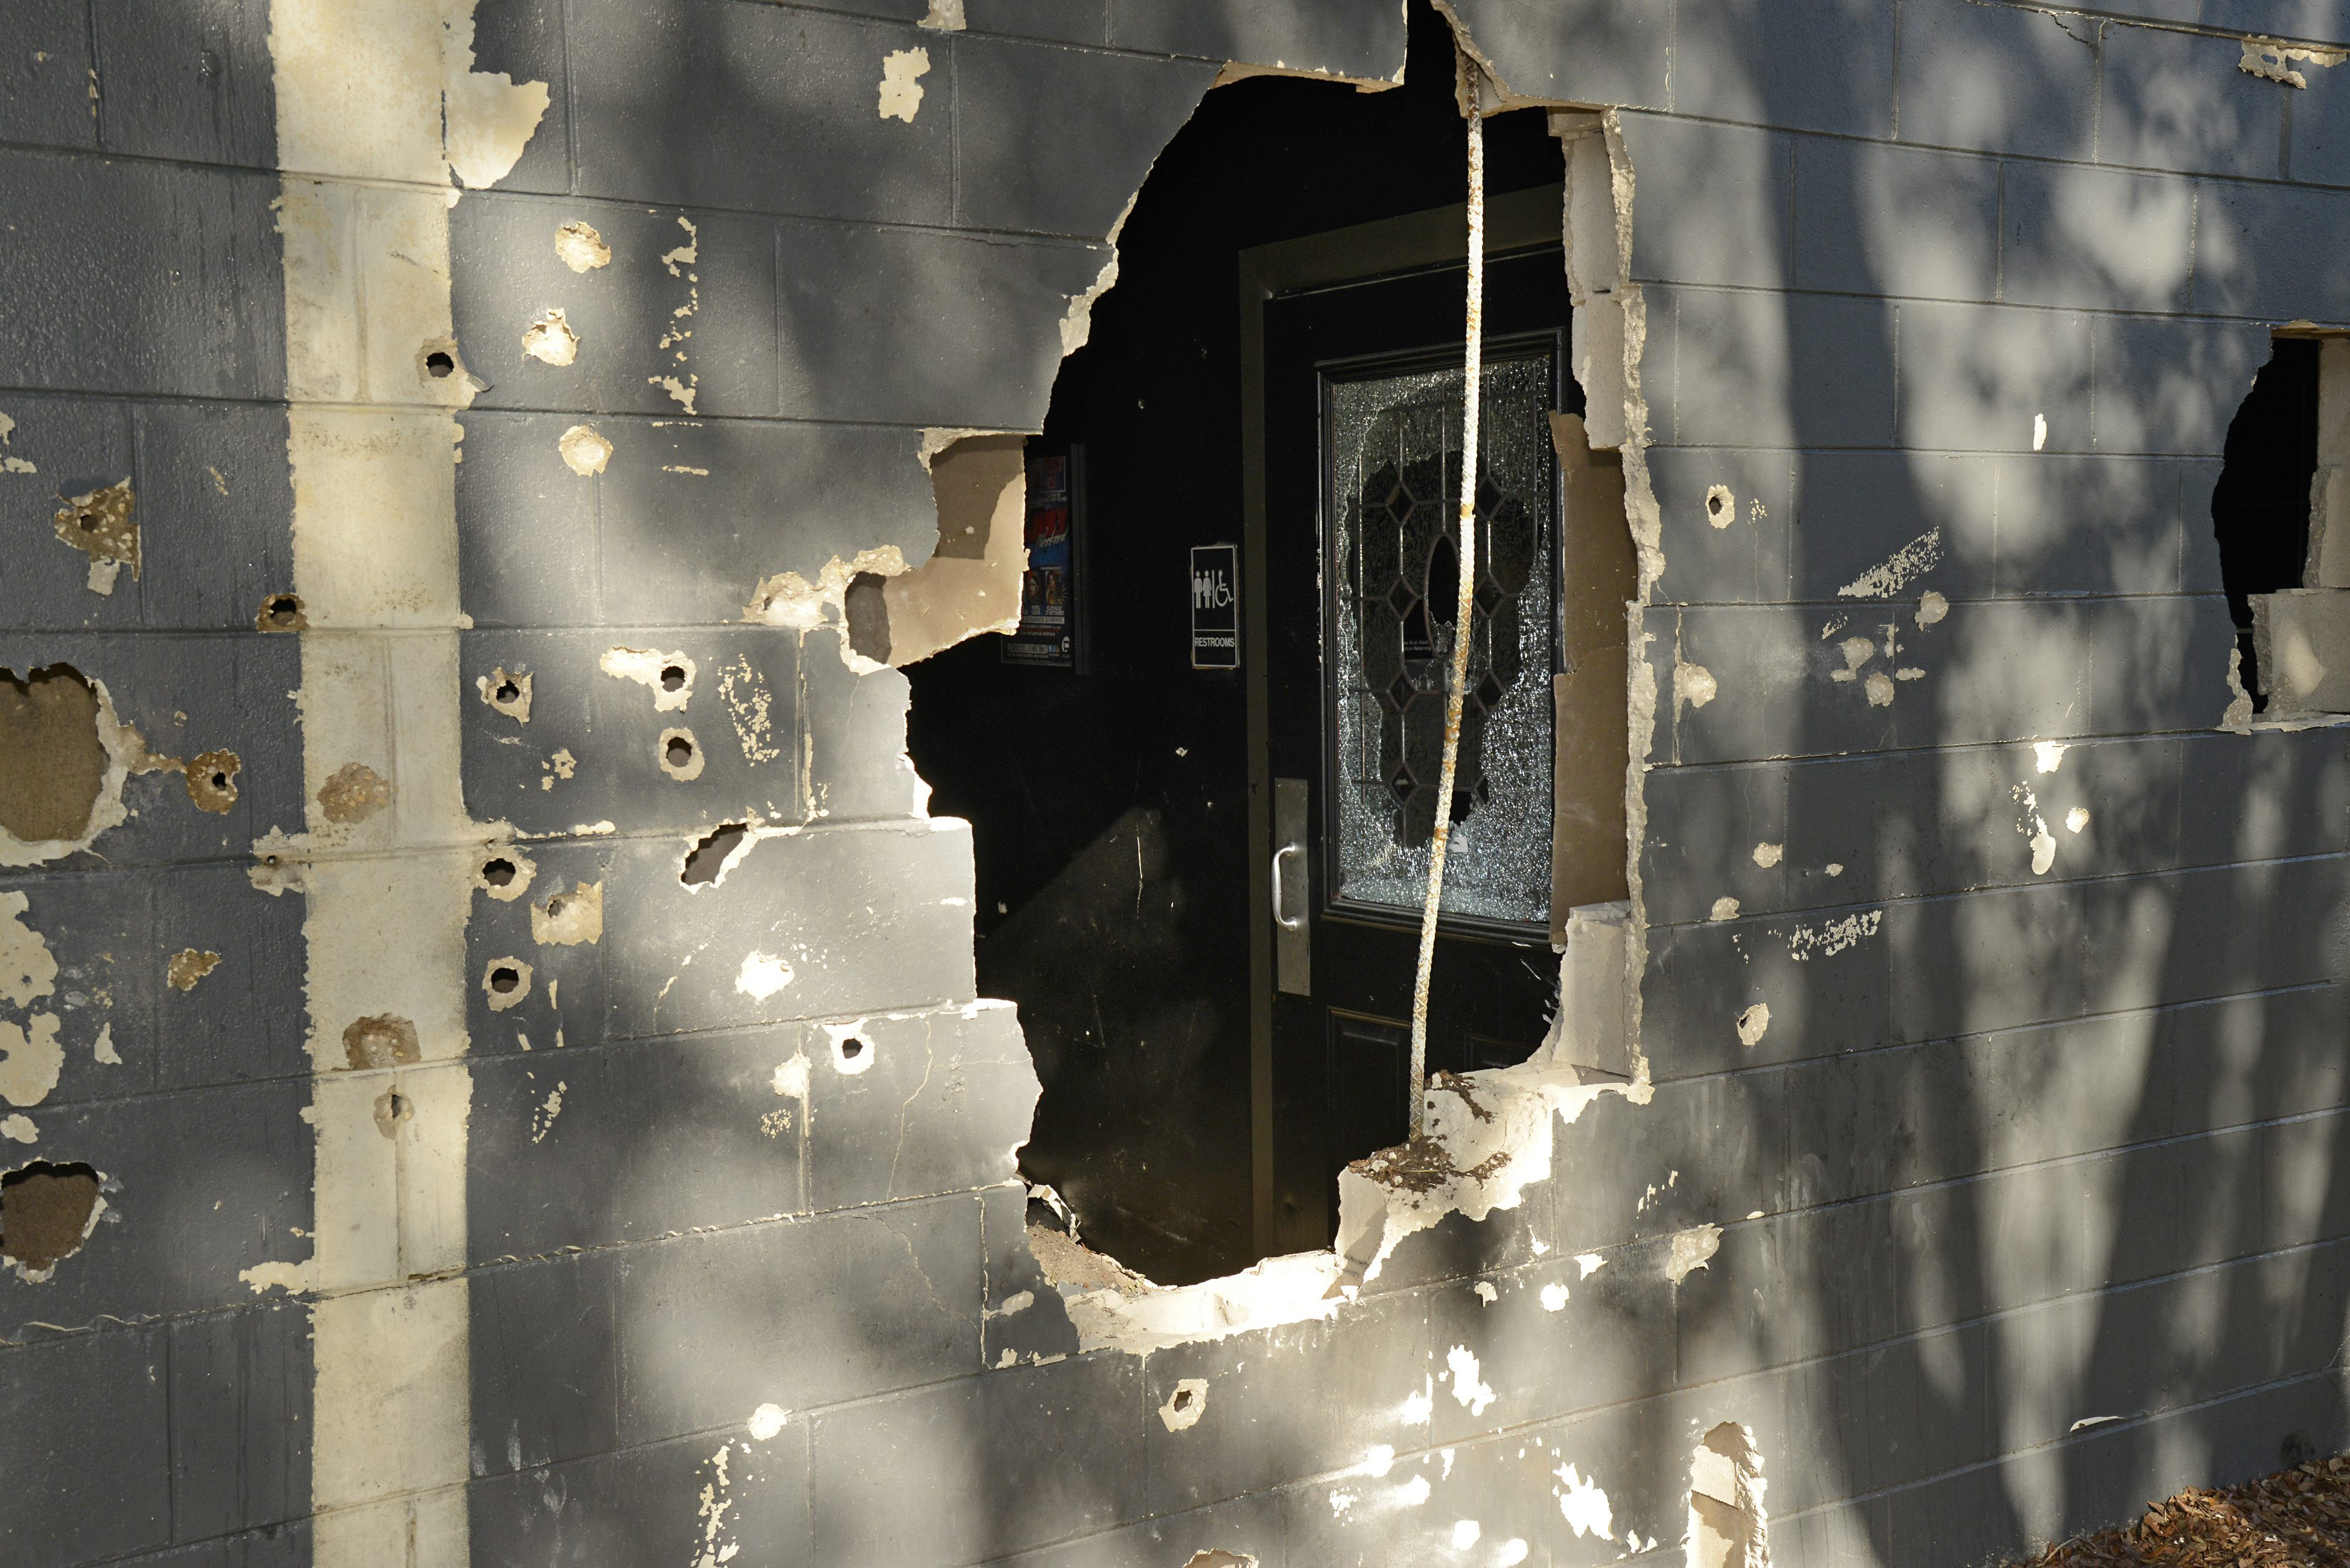 This June 20, 2016, photo released by the City of Orlando shows bullet holes and openings where police officers breached a wall of the Pulse nightclub to free hostages trapped in the worst mass shooting in modern U.S. history on the night of June 12, 2016. Forty-nine people were killed and dozens were injured after gunman Omar Mateen entered the gay nightclub and opened fire last June. (City of Orlando via AP)